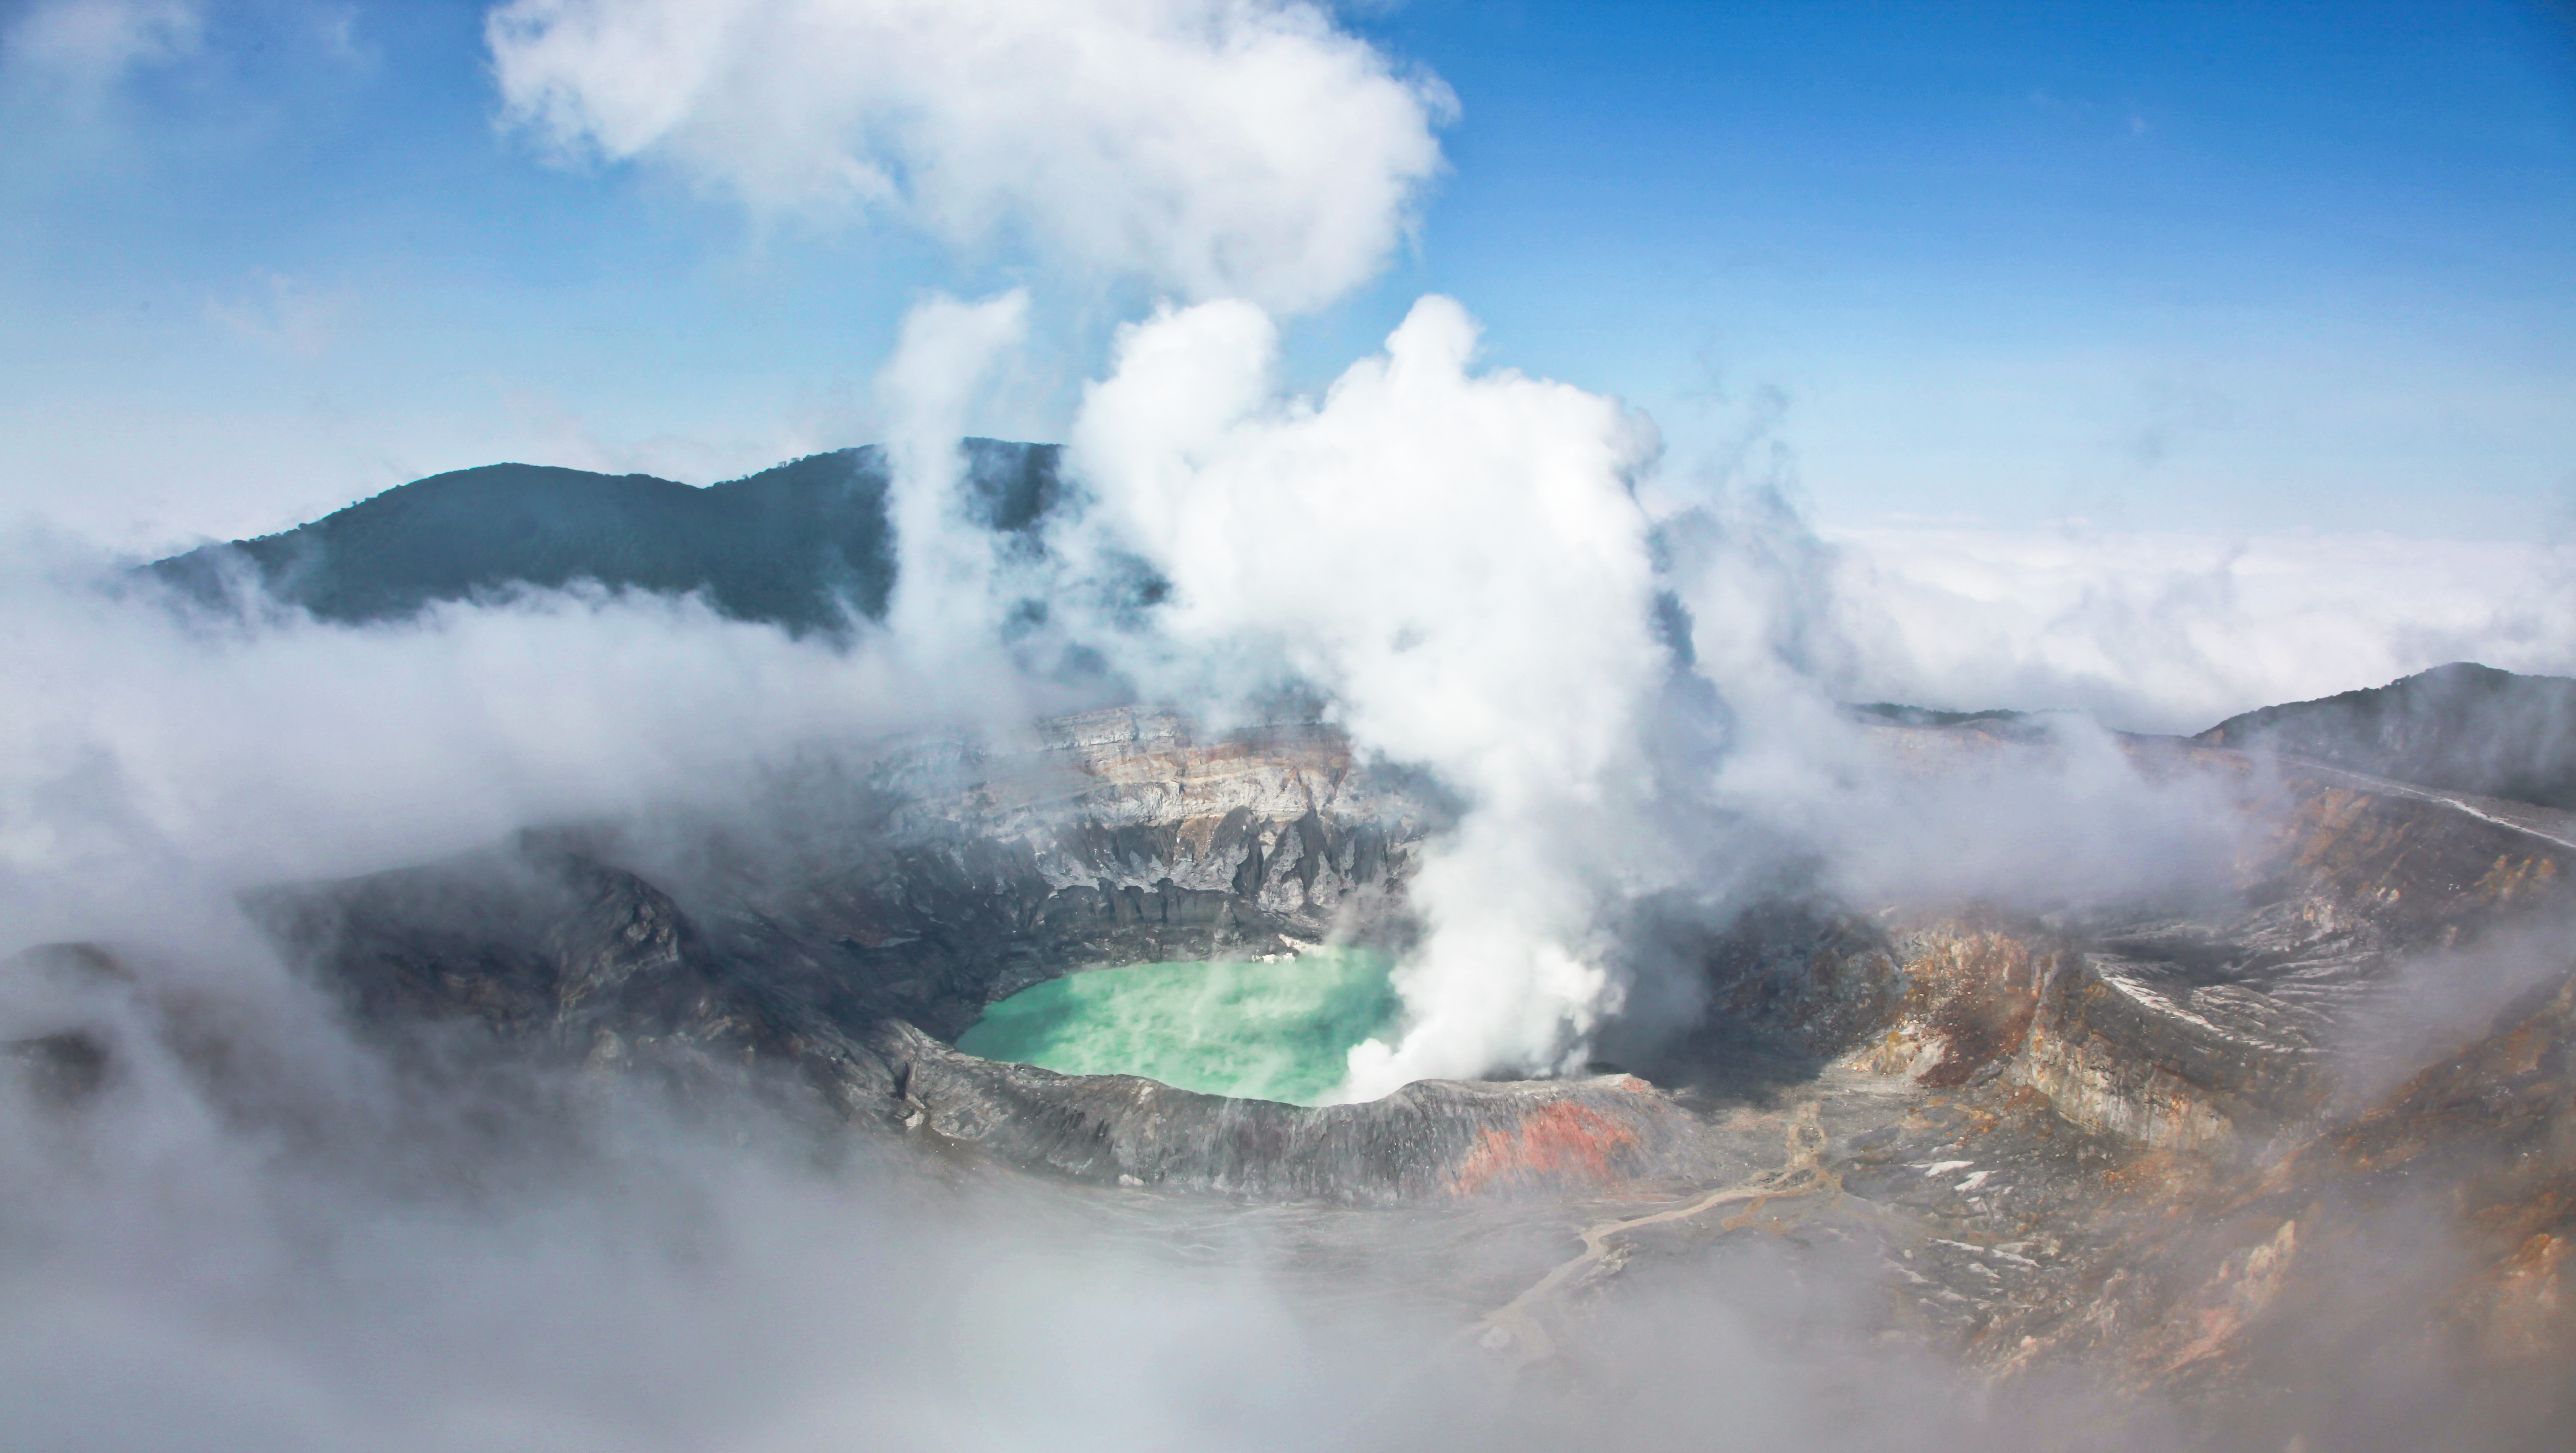 Volcanic activity closes natioanl park in Costa Rica. Image by Shutterstock RF